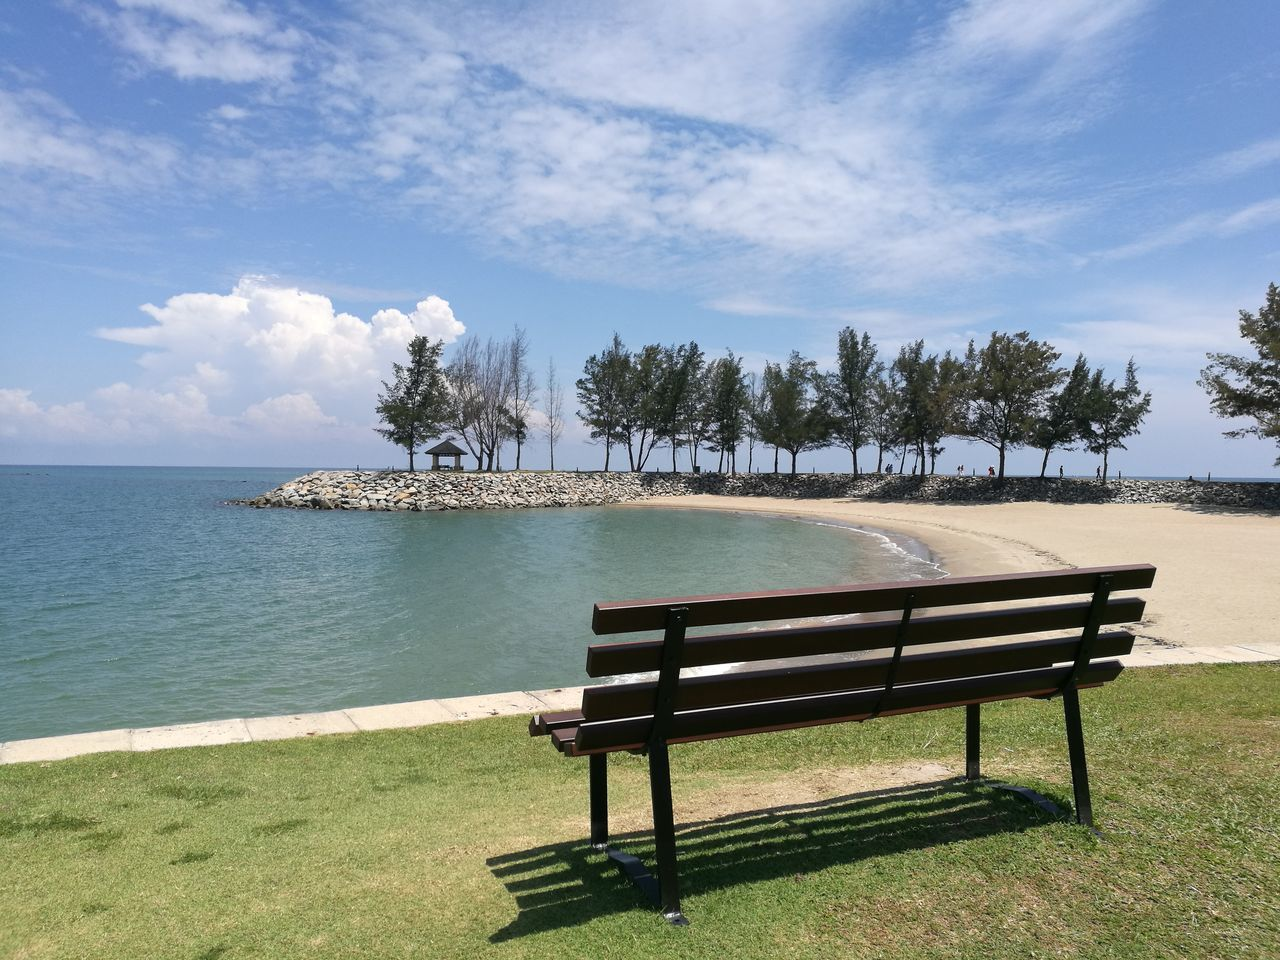 Nature Beach Tree Water Relaxation Landscape Outdoors Tranquility No People Cloud - Sky Sea Sky Horizon Over Water Brunei Darussalam